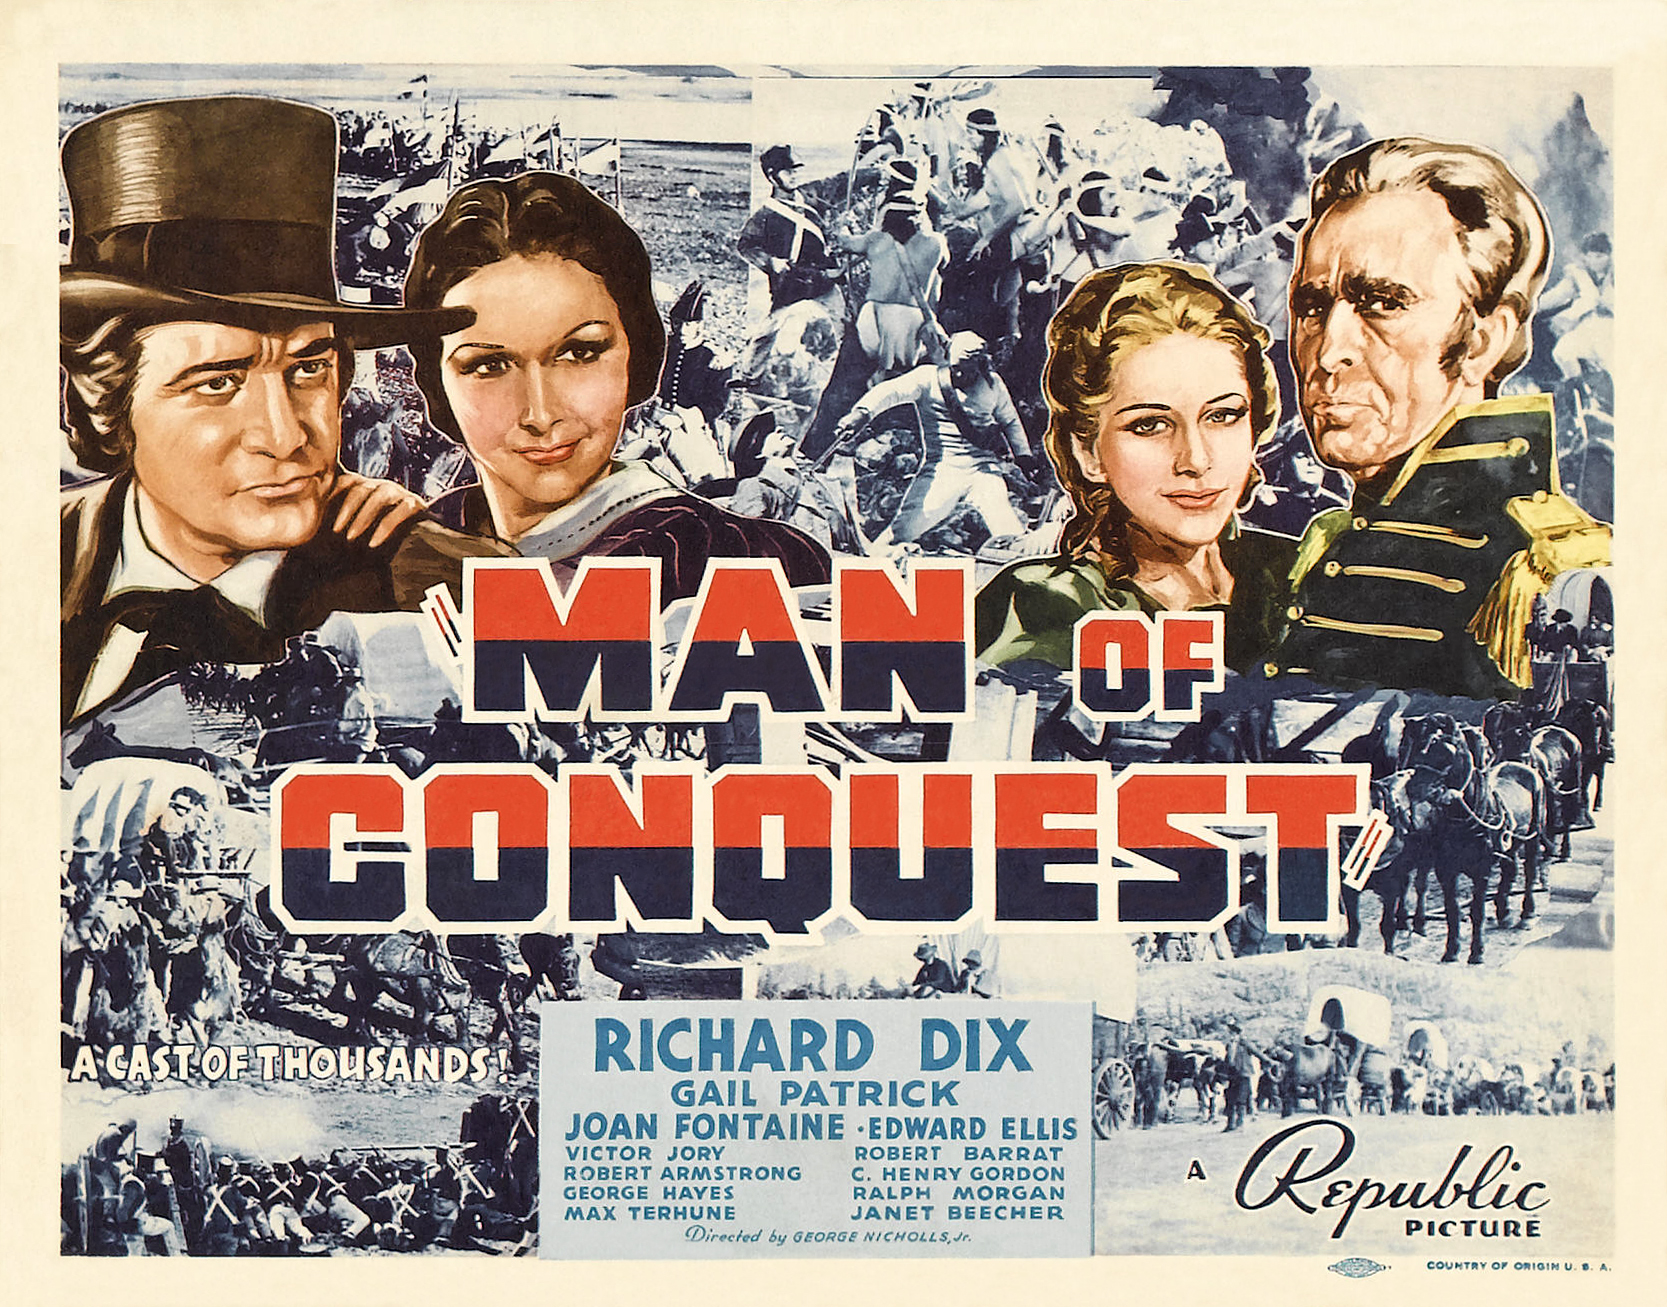 Joan Fontaine, Richard Dix, Edward Ellis, and Gail Patrick in Man of Conquest (1939)